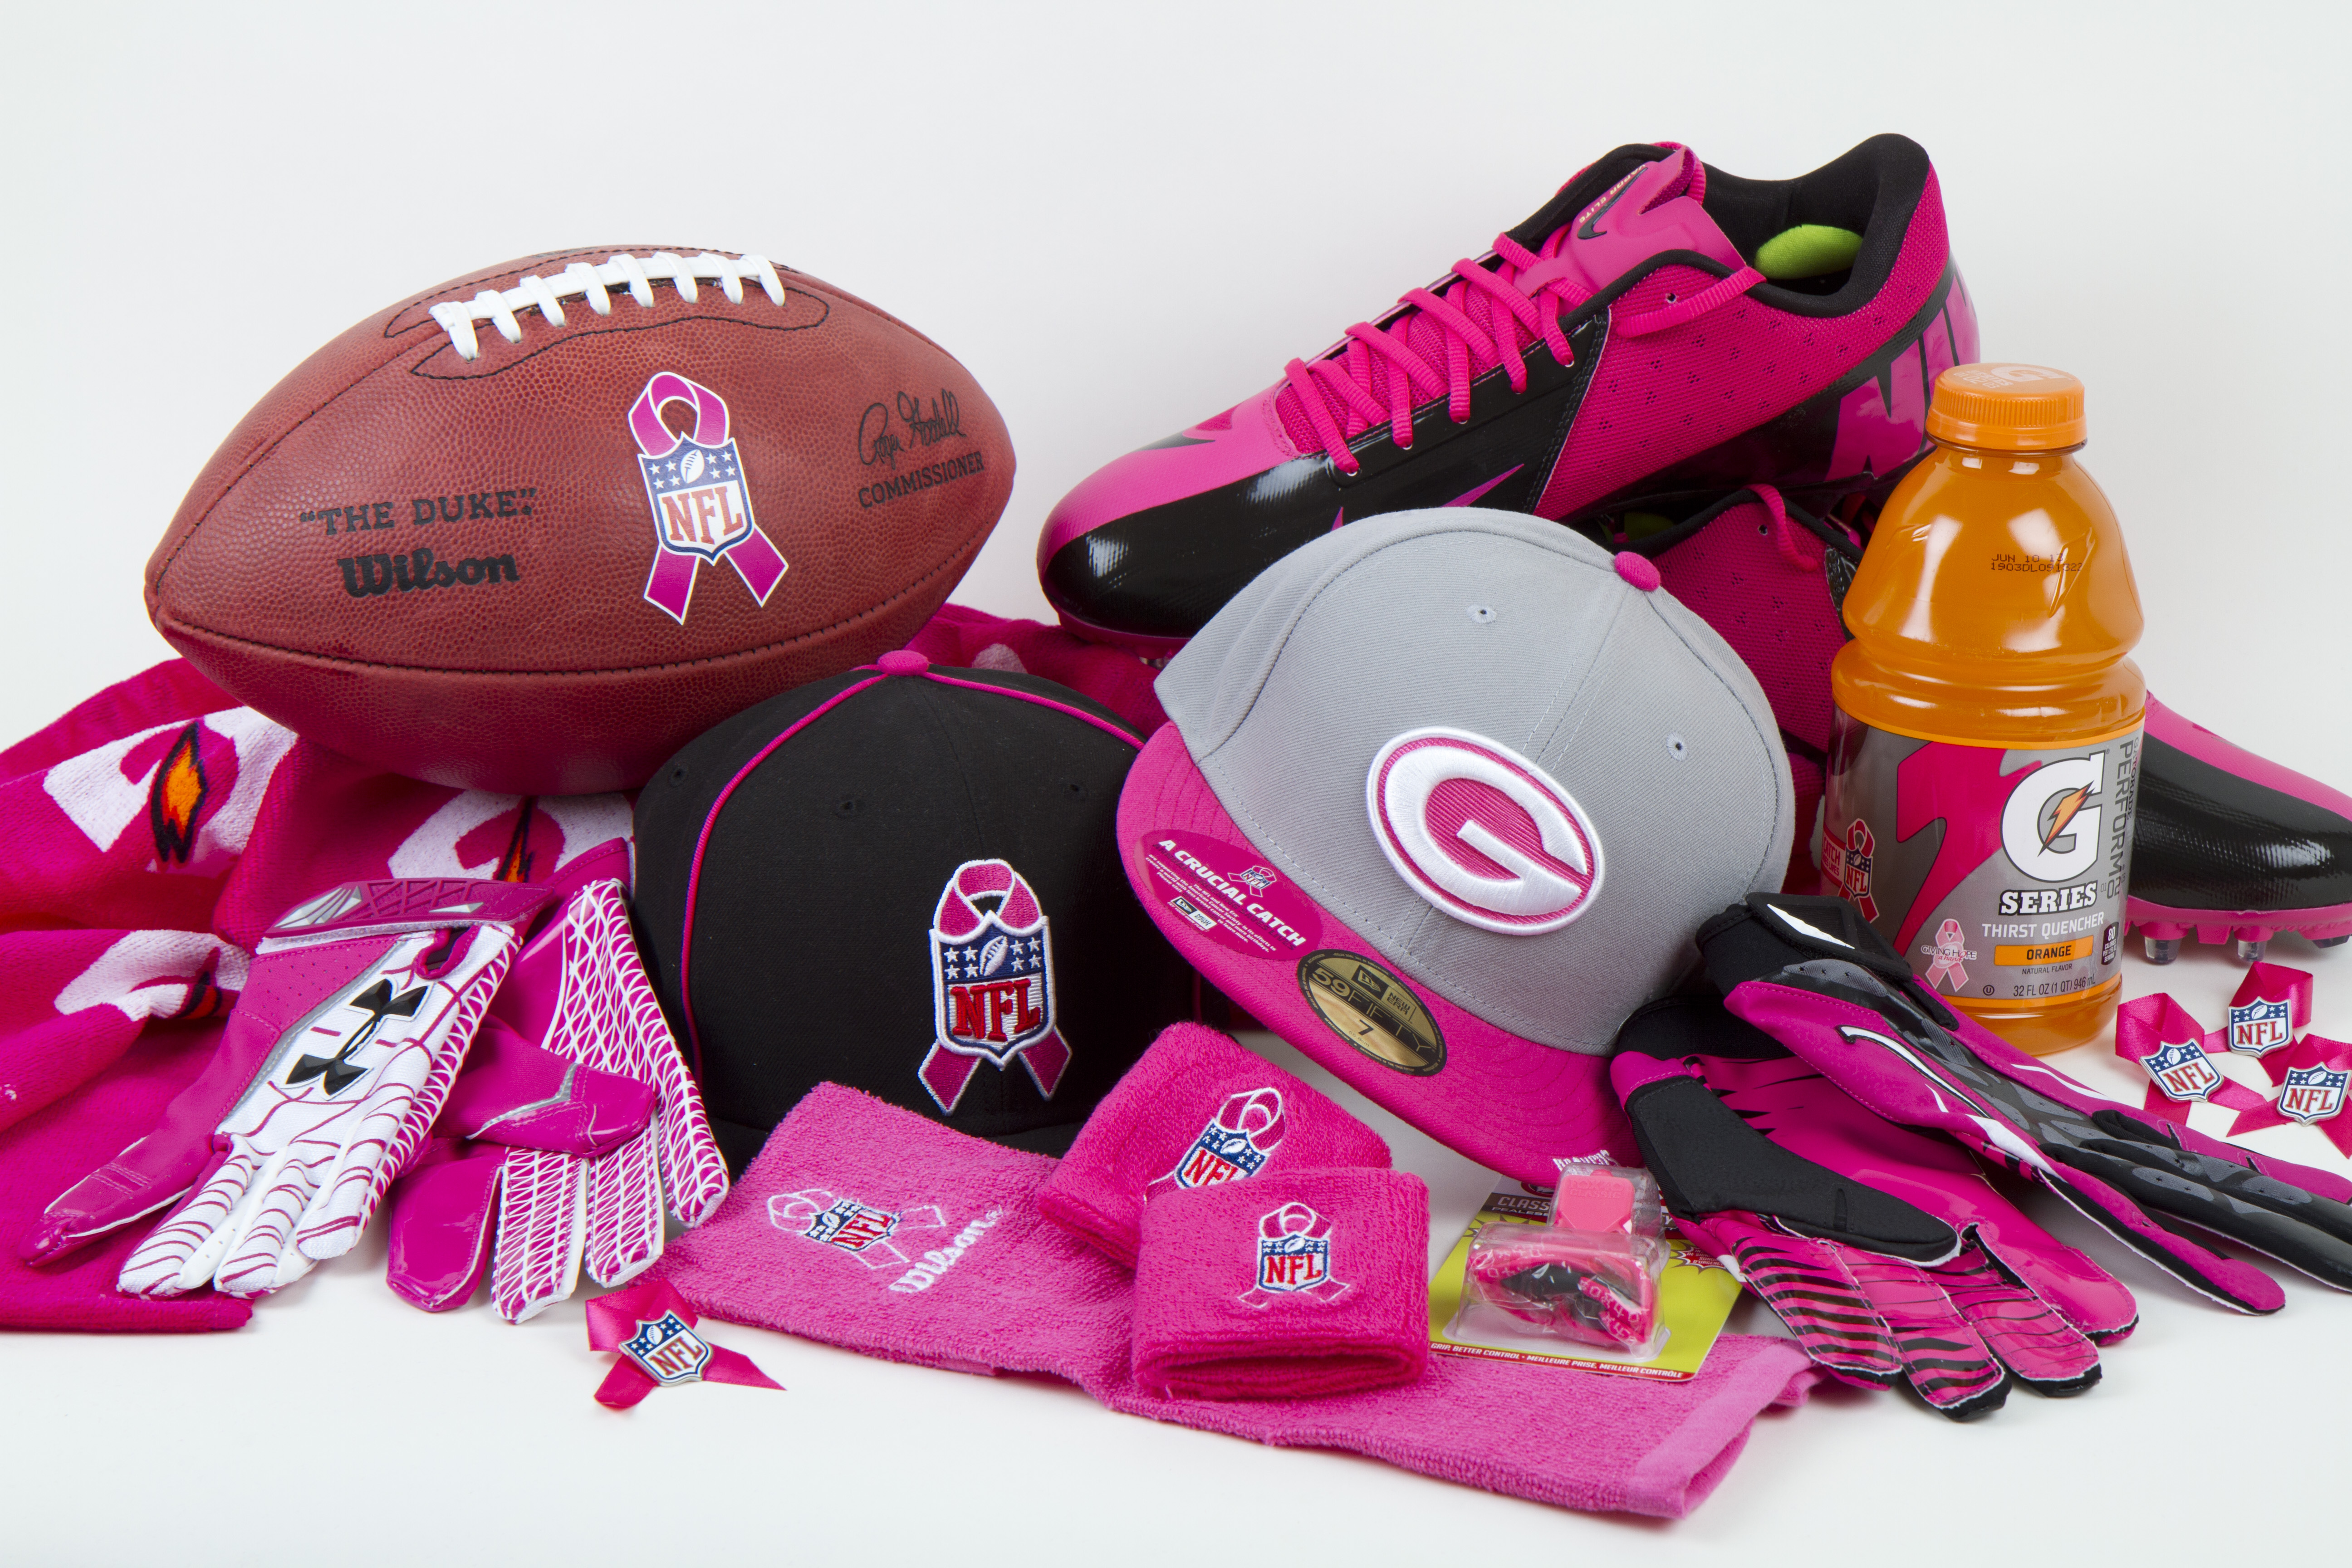 The nfl and breast cancer good bad or both rookerville for Breast cancer nfl shirts